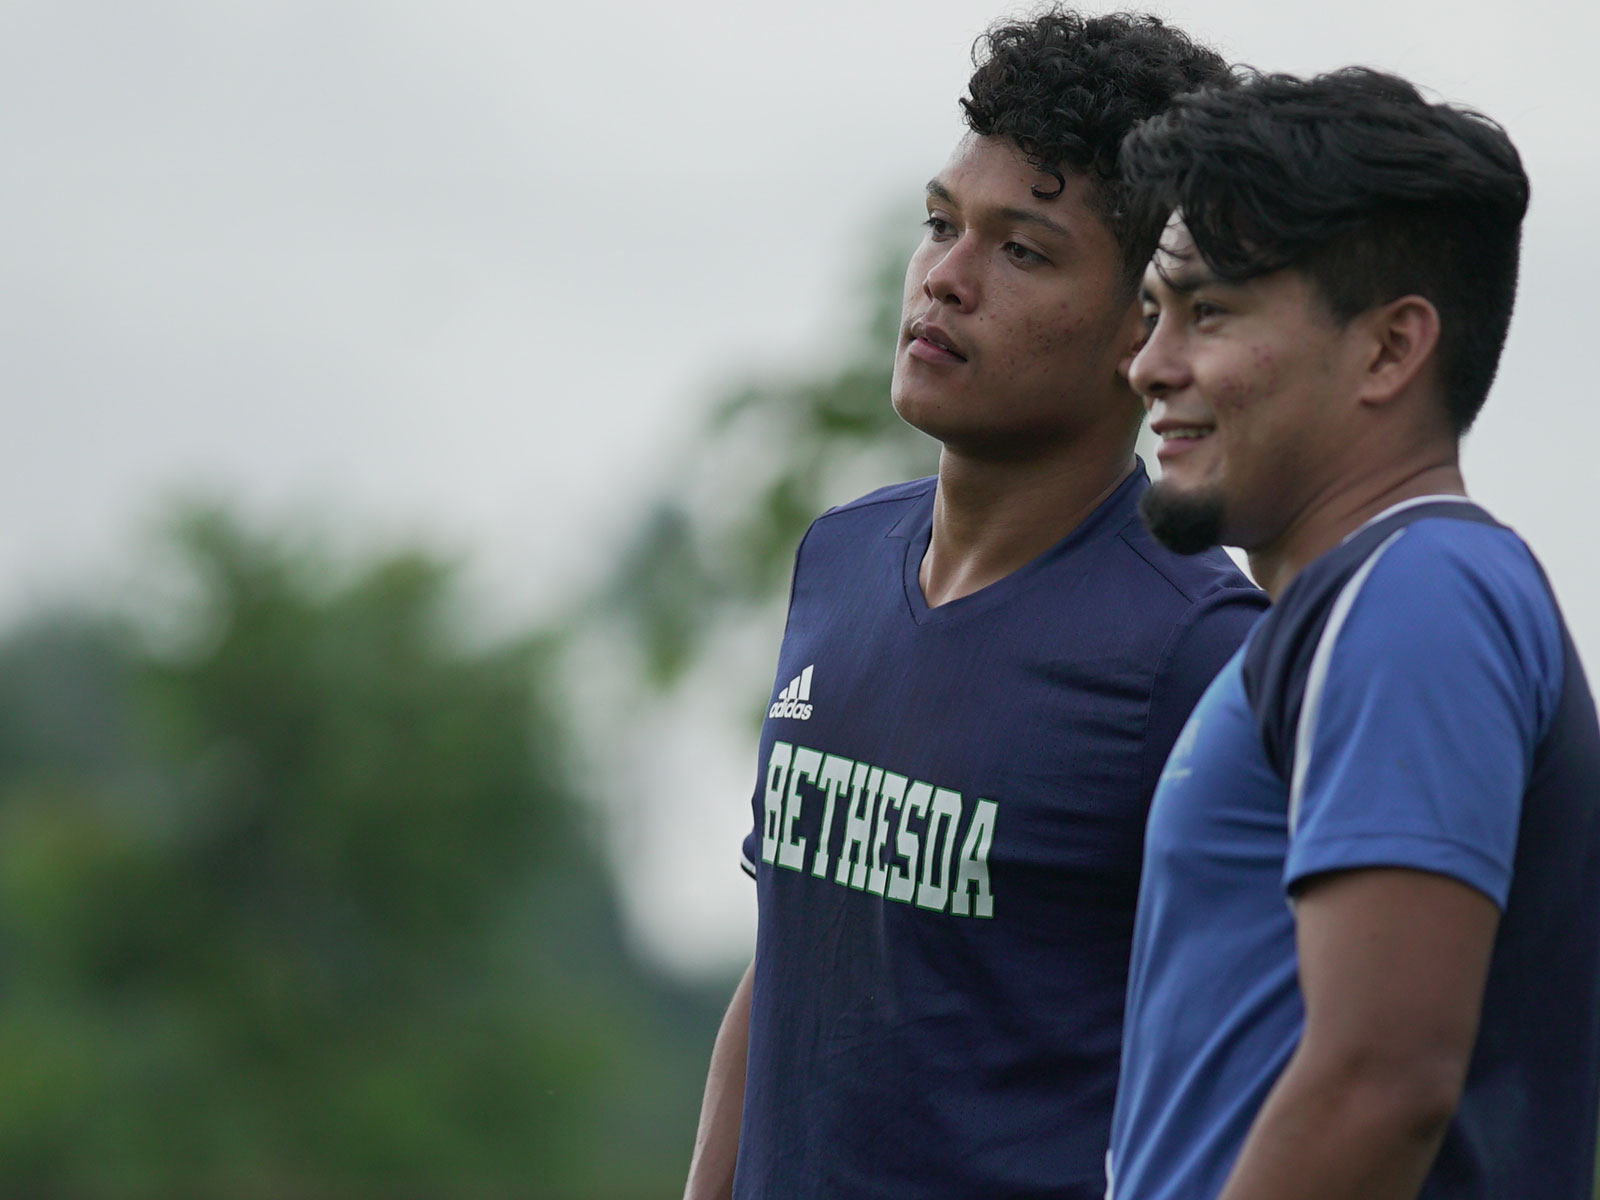 Lizandro and Diego Claros Saravia played for the Bethesda Soccer Club